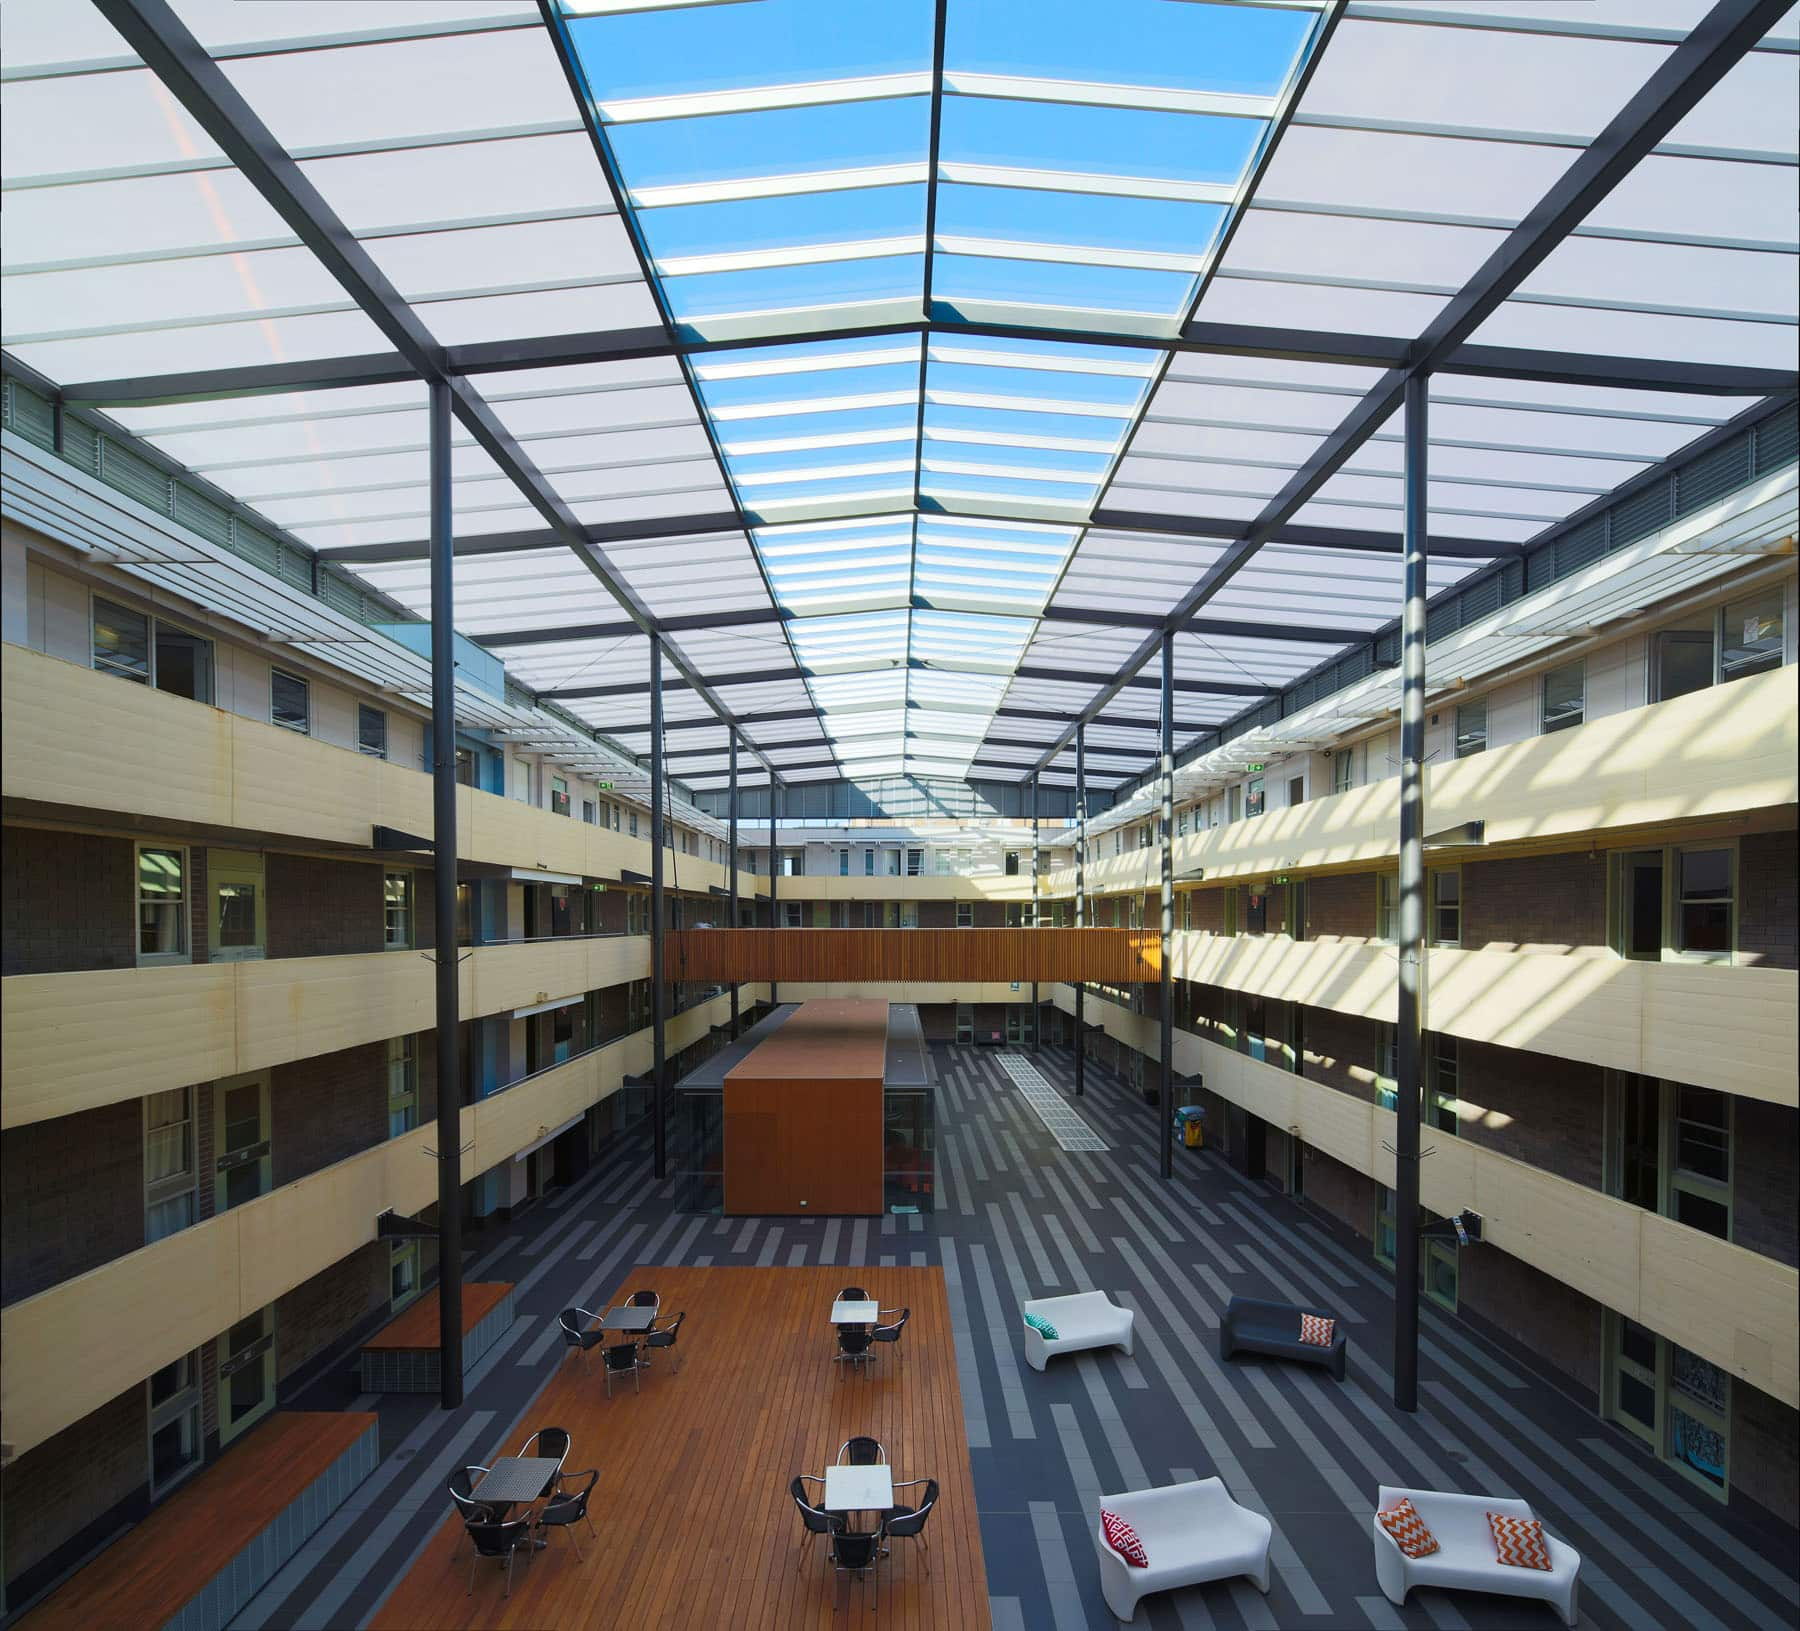 UNSW New College Masters Natural Lighting in Building Design